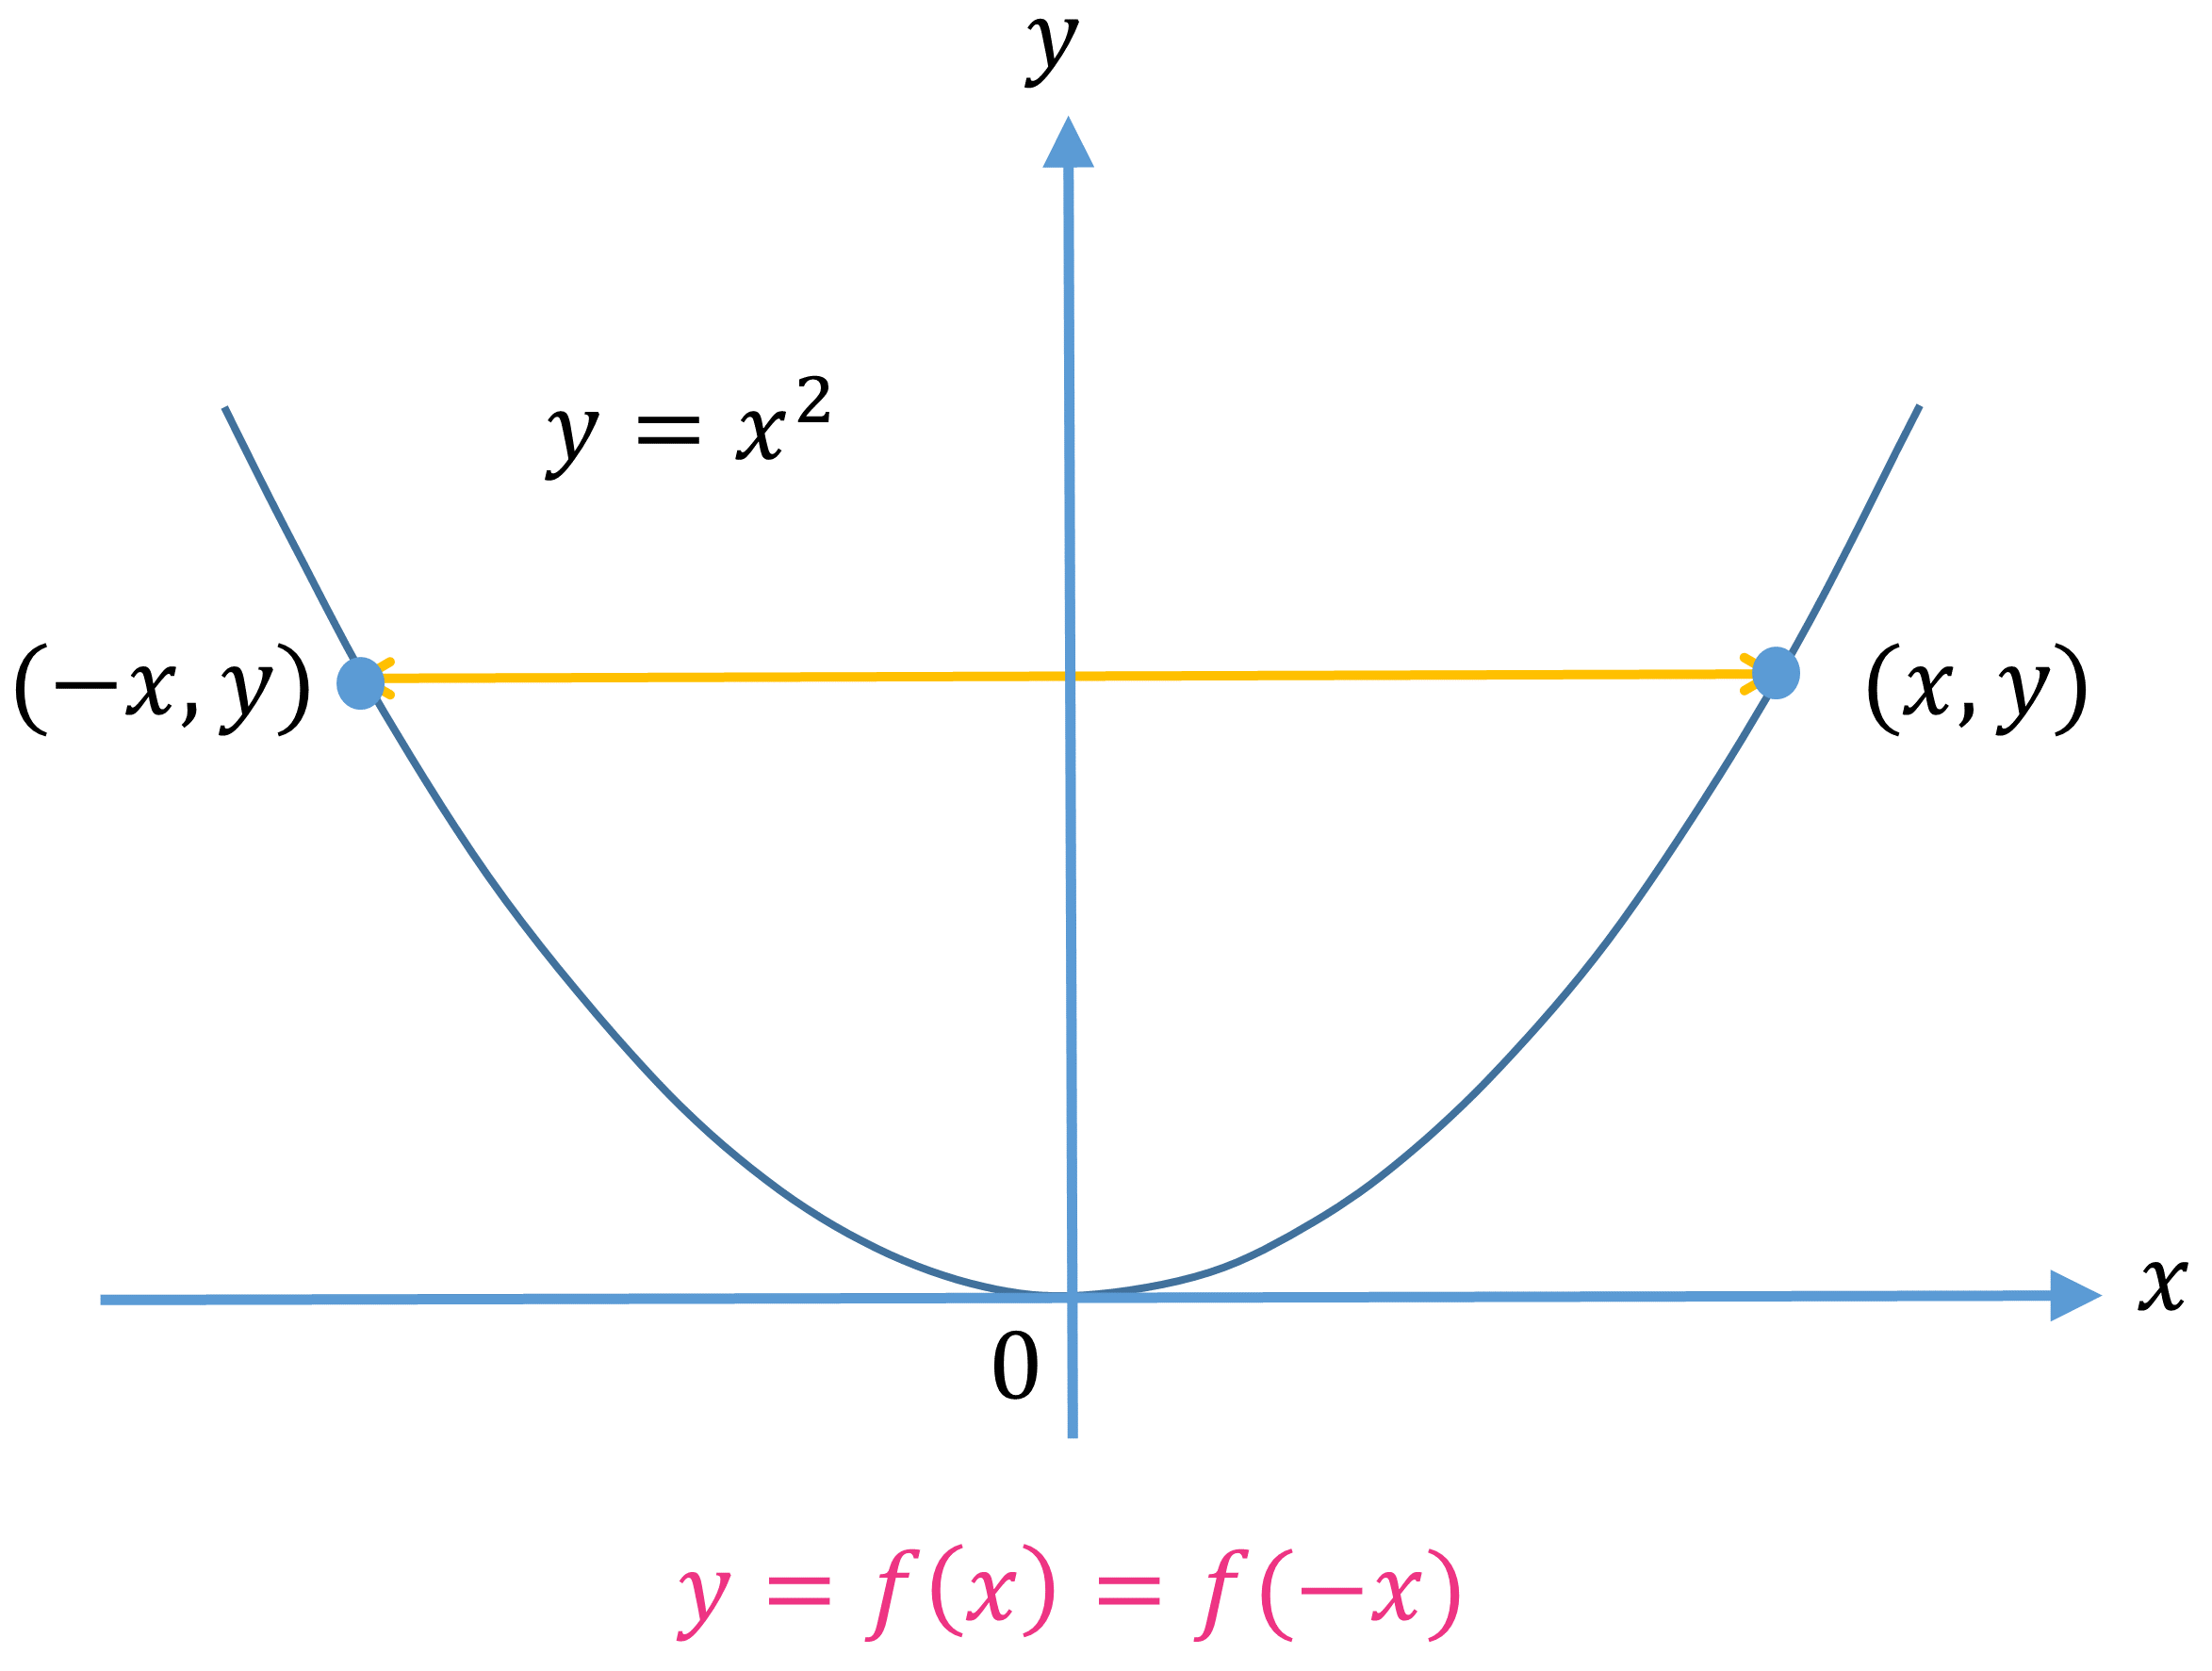 Graph to show even function's symmetry about y-axis